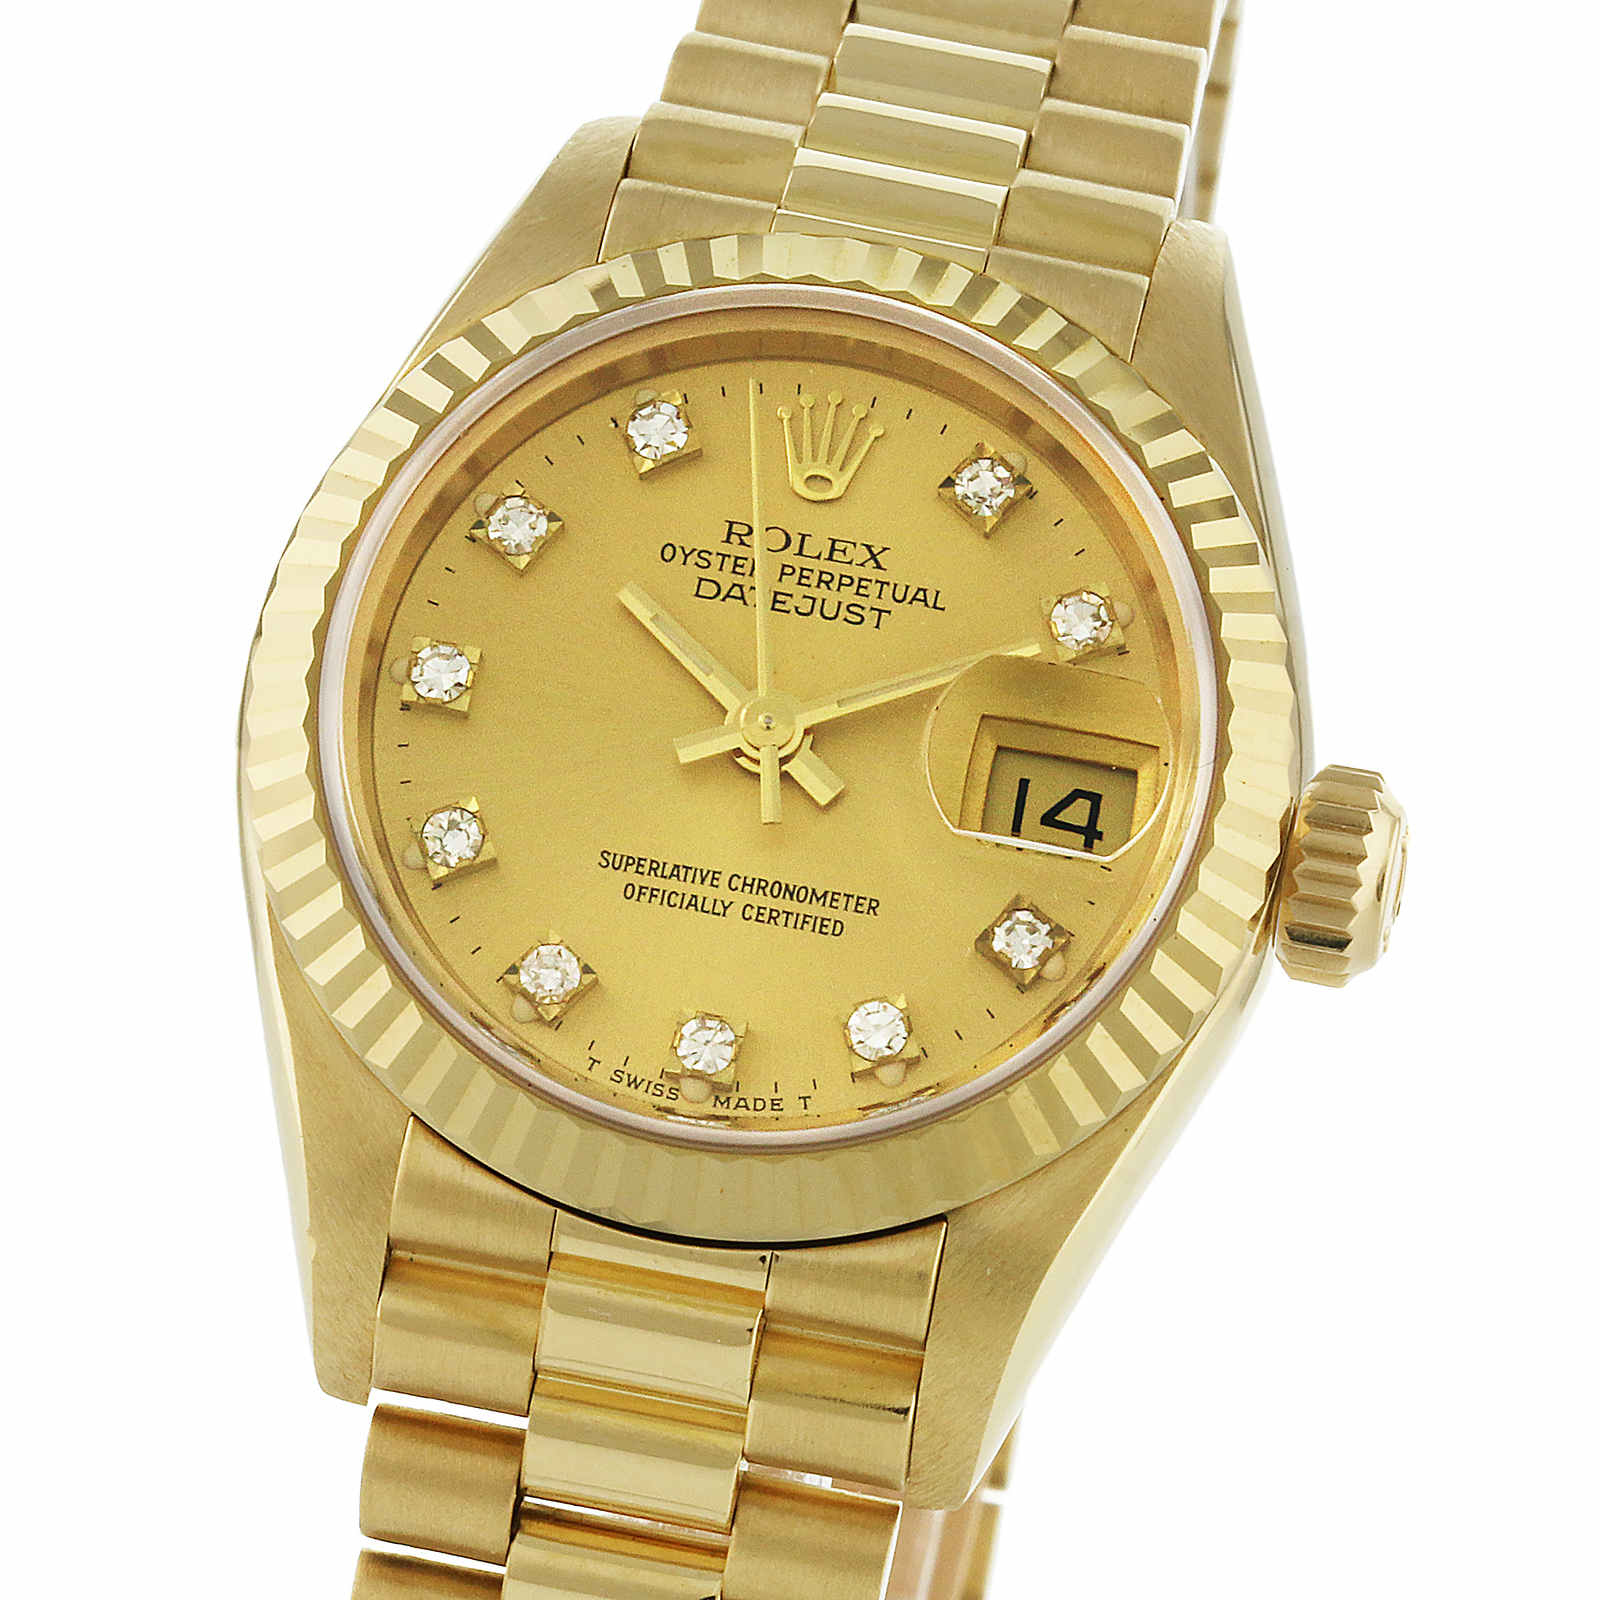 Pre-Owned Rolex Day-Date Ladies Watch, Circa 1981